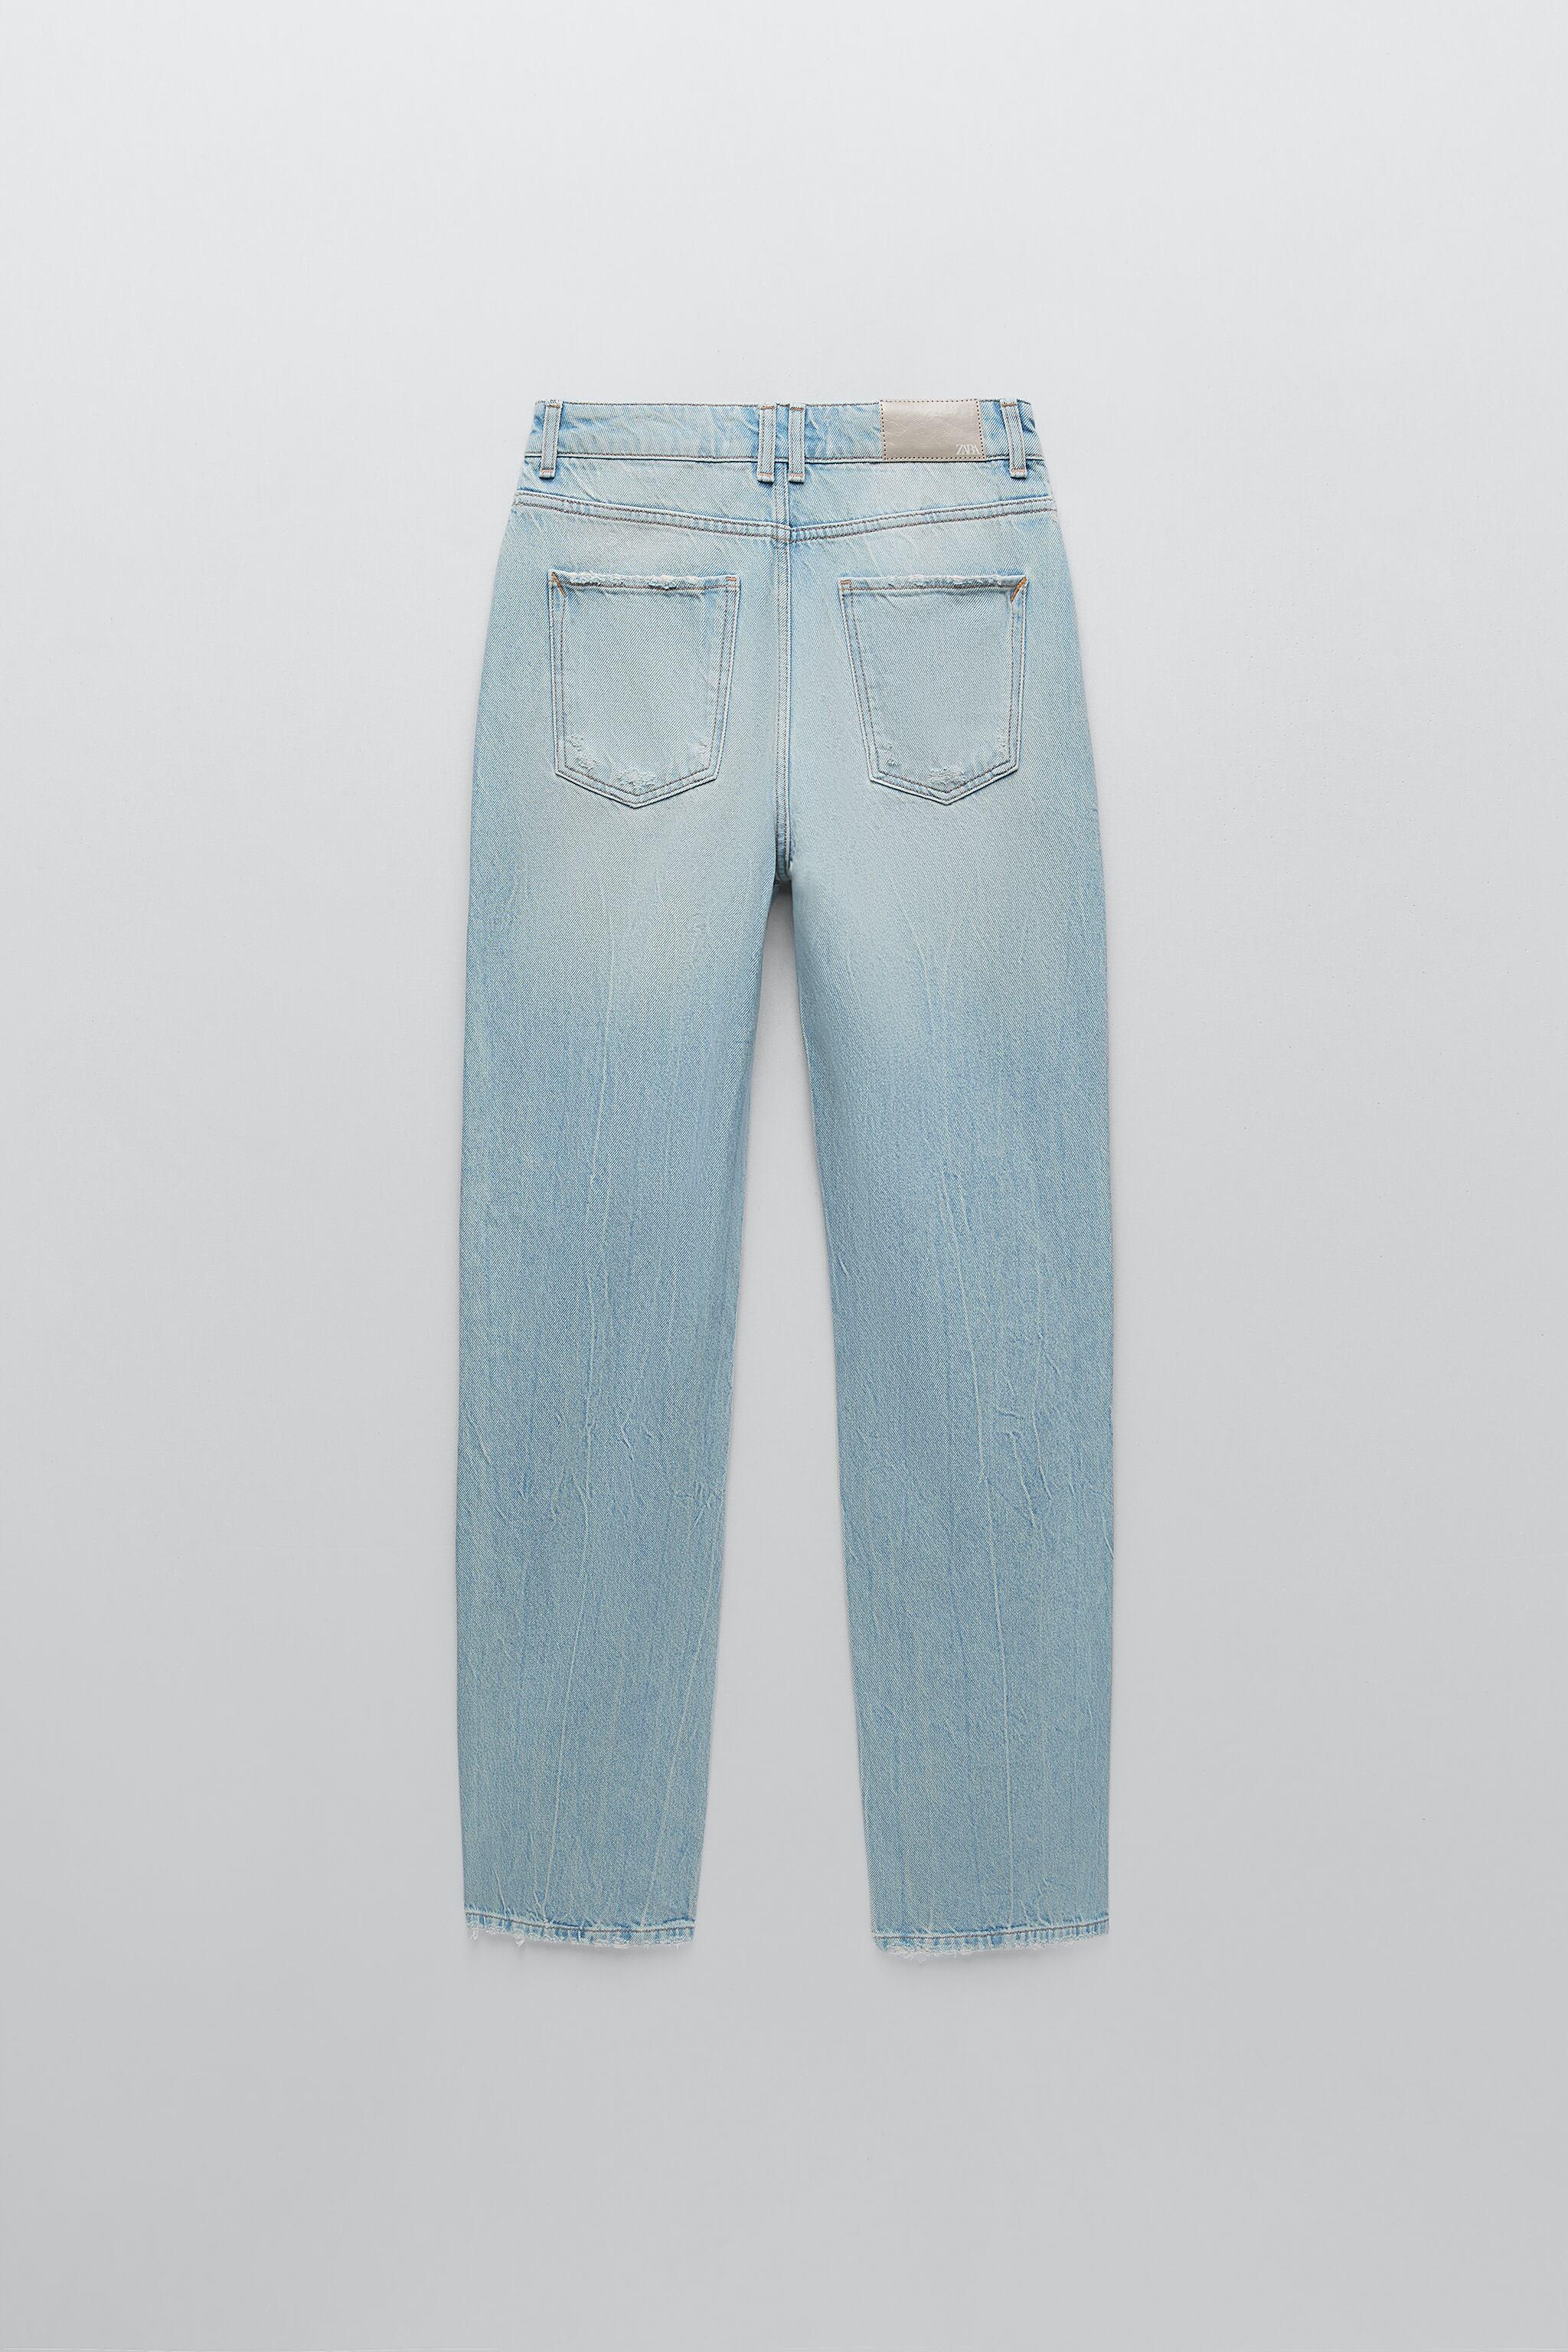 Z1975 HI-RISE STRAIGHT LEG JEANS WITH RIPS 2